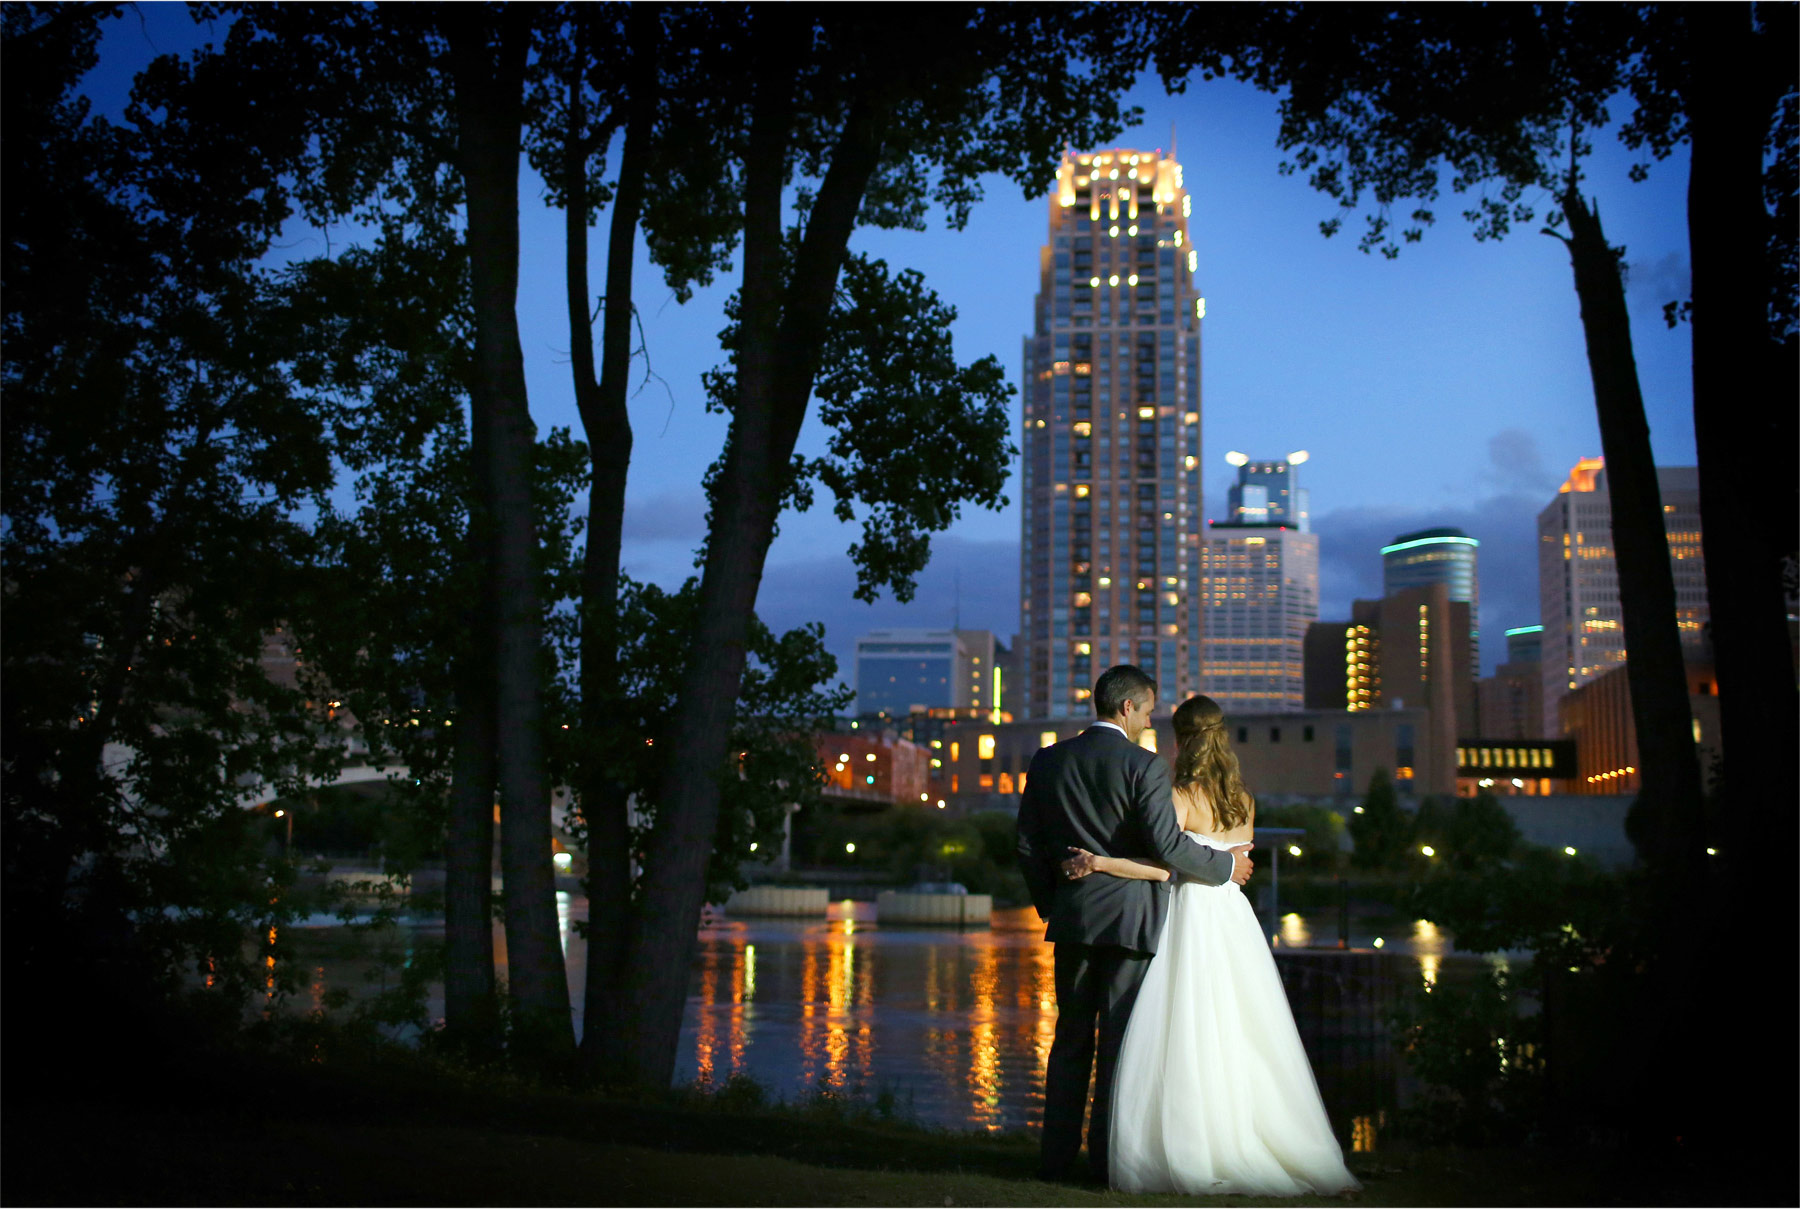 21-Minneapolis-Minnesota-Wedding-Photographer-by-Andrew-Vick-Photography-Summer-Bride-Groom-Nicollett-Island-Pavilion-Embrace-Dress-Downtown-Night-Mississippi-River-Katie-and-Travis.jpg